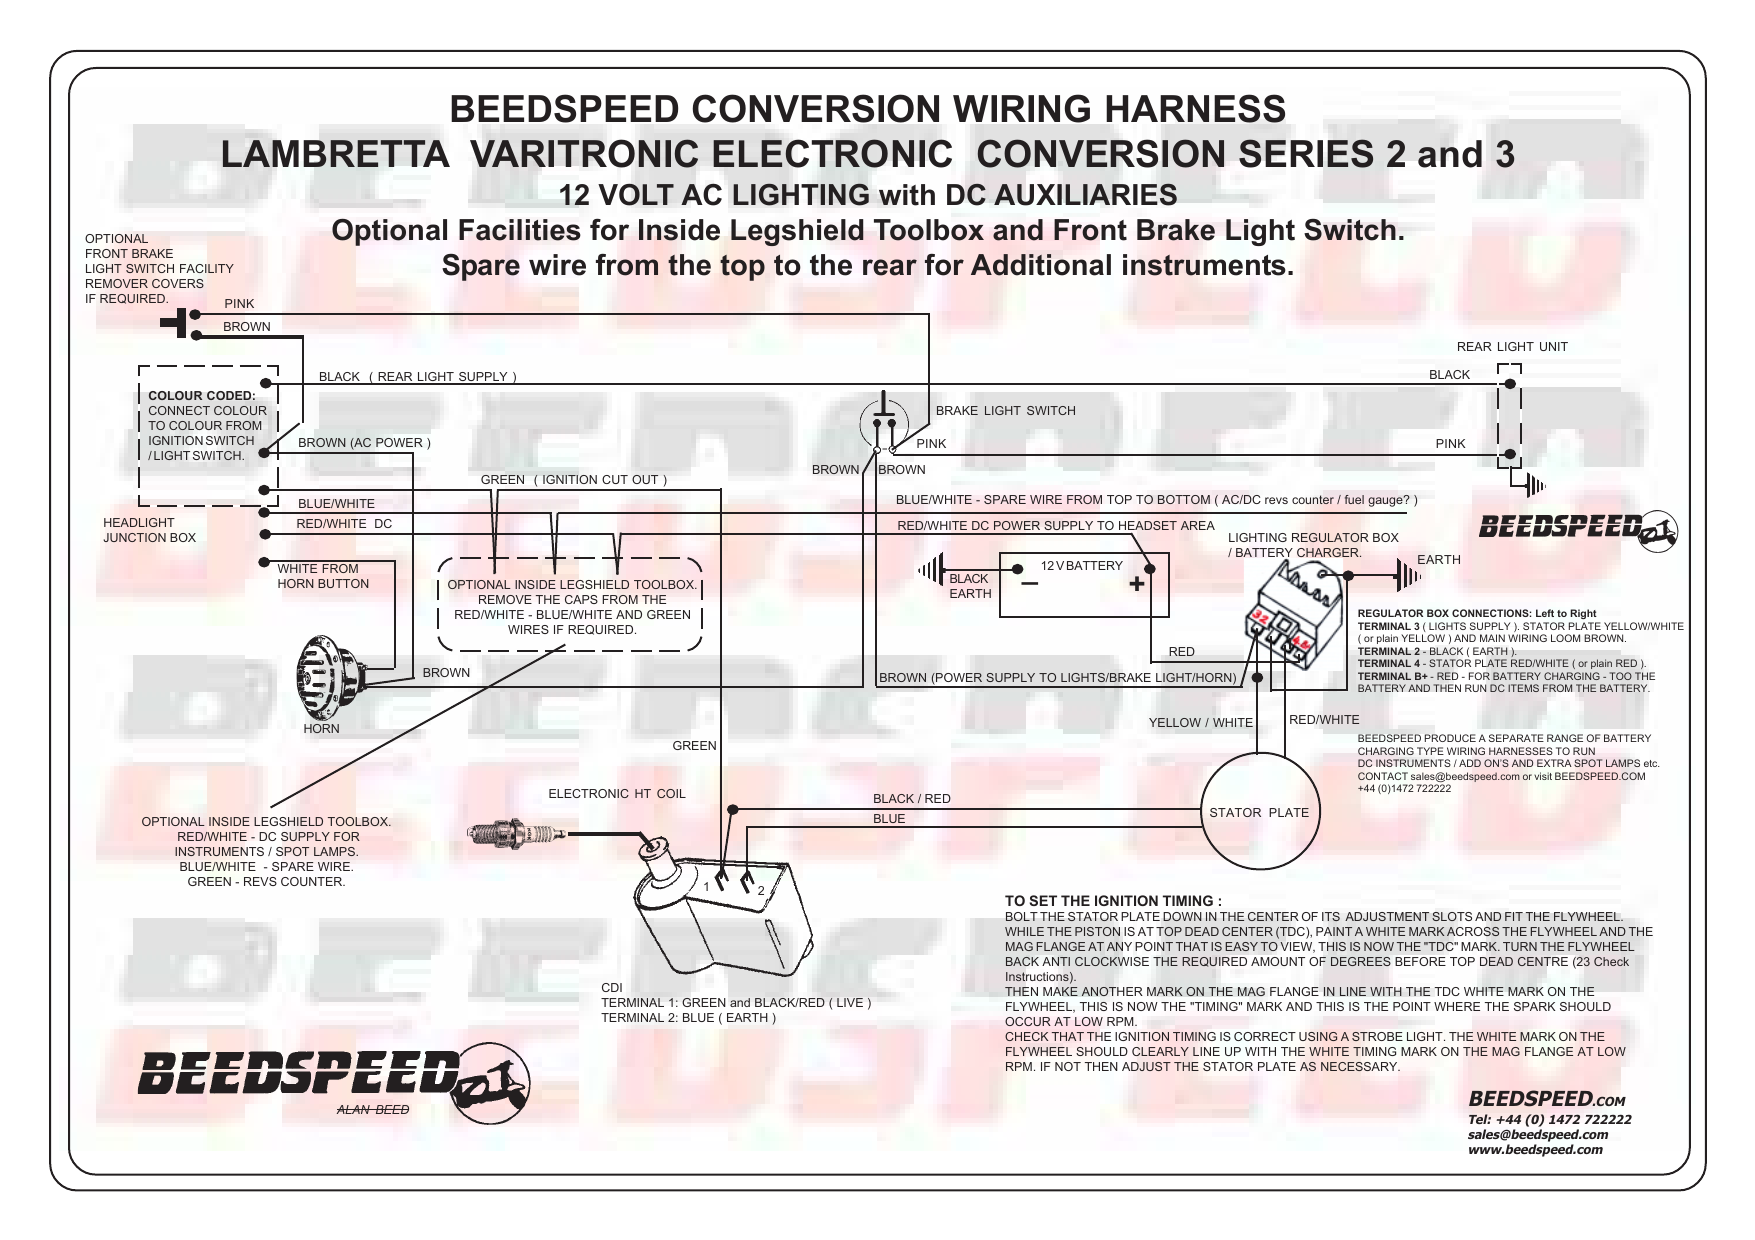 018556260_1 b4df7bce7d31e77b7a555d210f5450ac beedspeed conversion wiring harness lambretta lambretta wiring loom diagram at bakdesigns.co